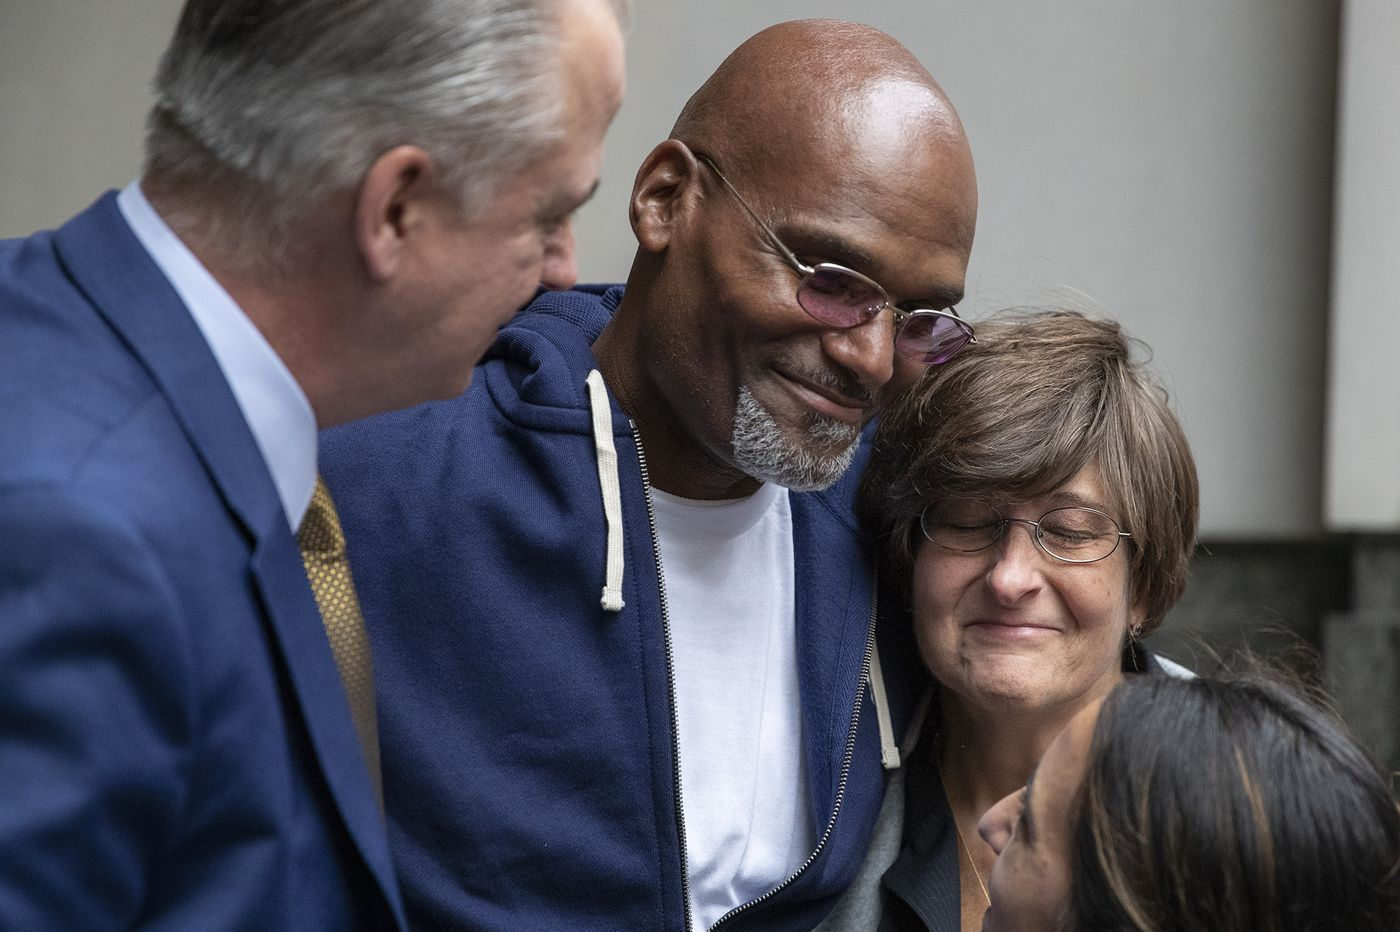 Expunged records and monetary compensation are the least the state owes the wrongfully convicted | Editorial